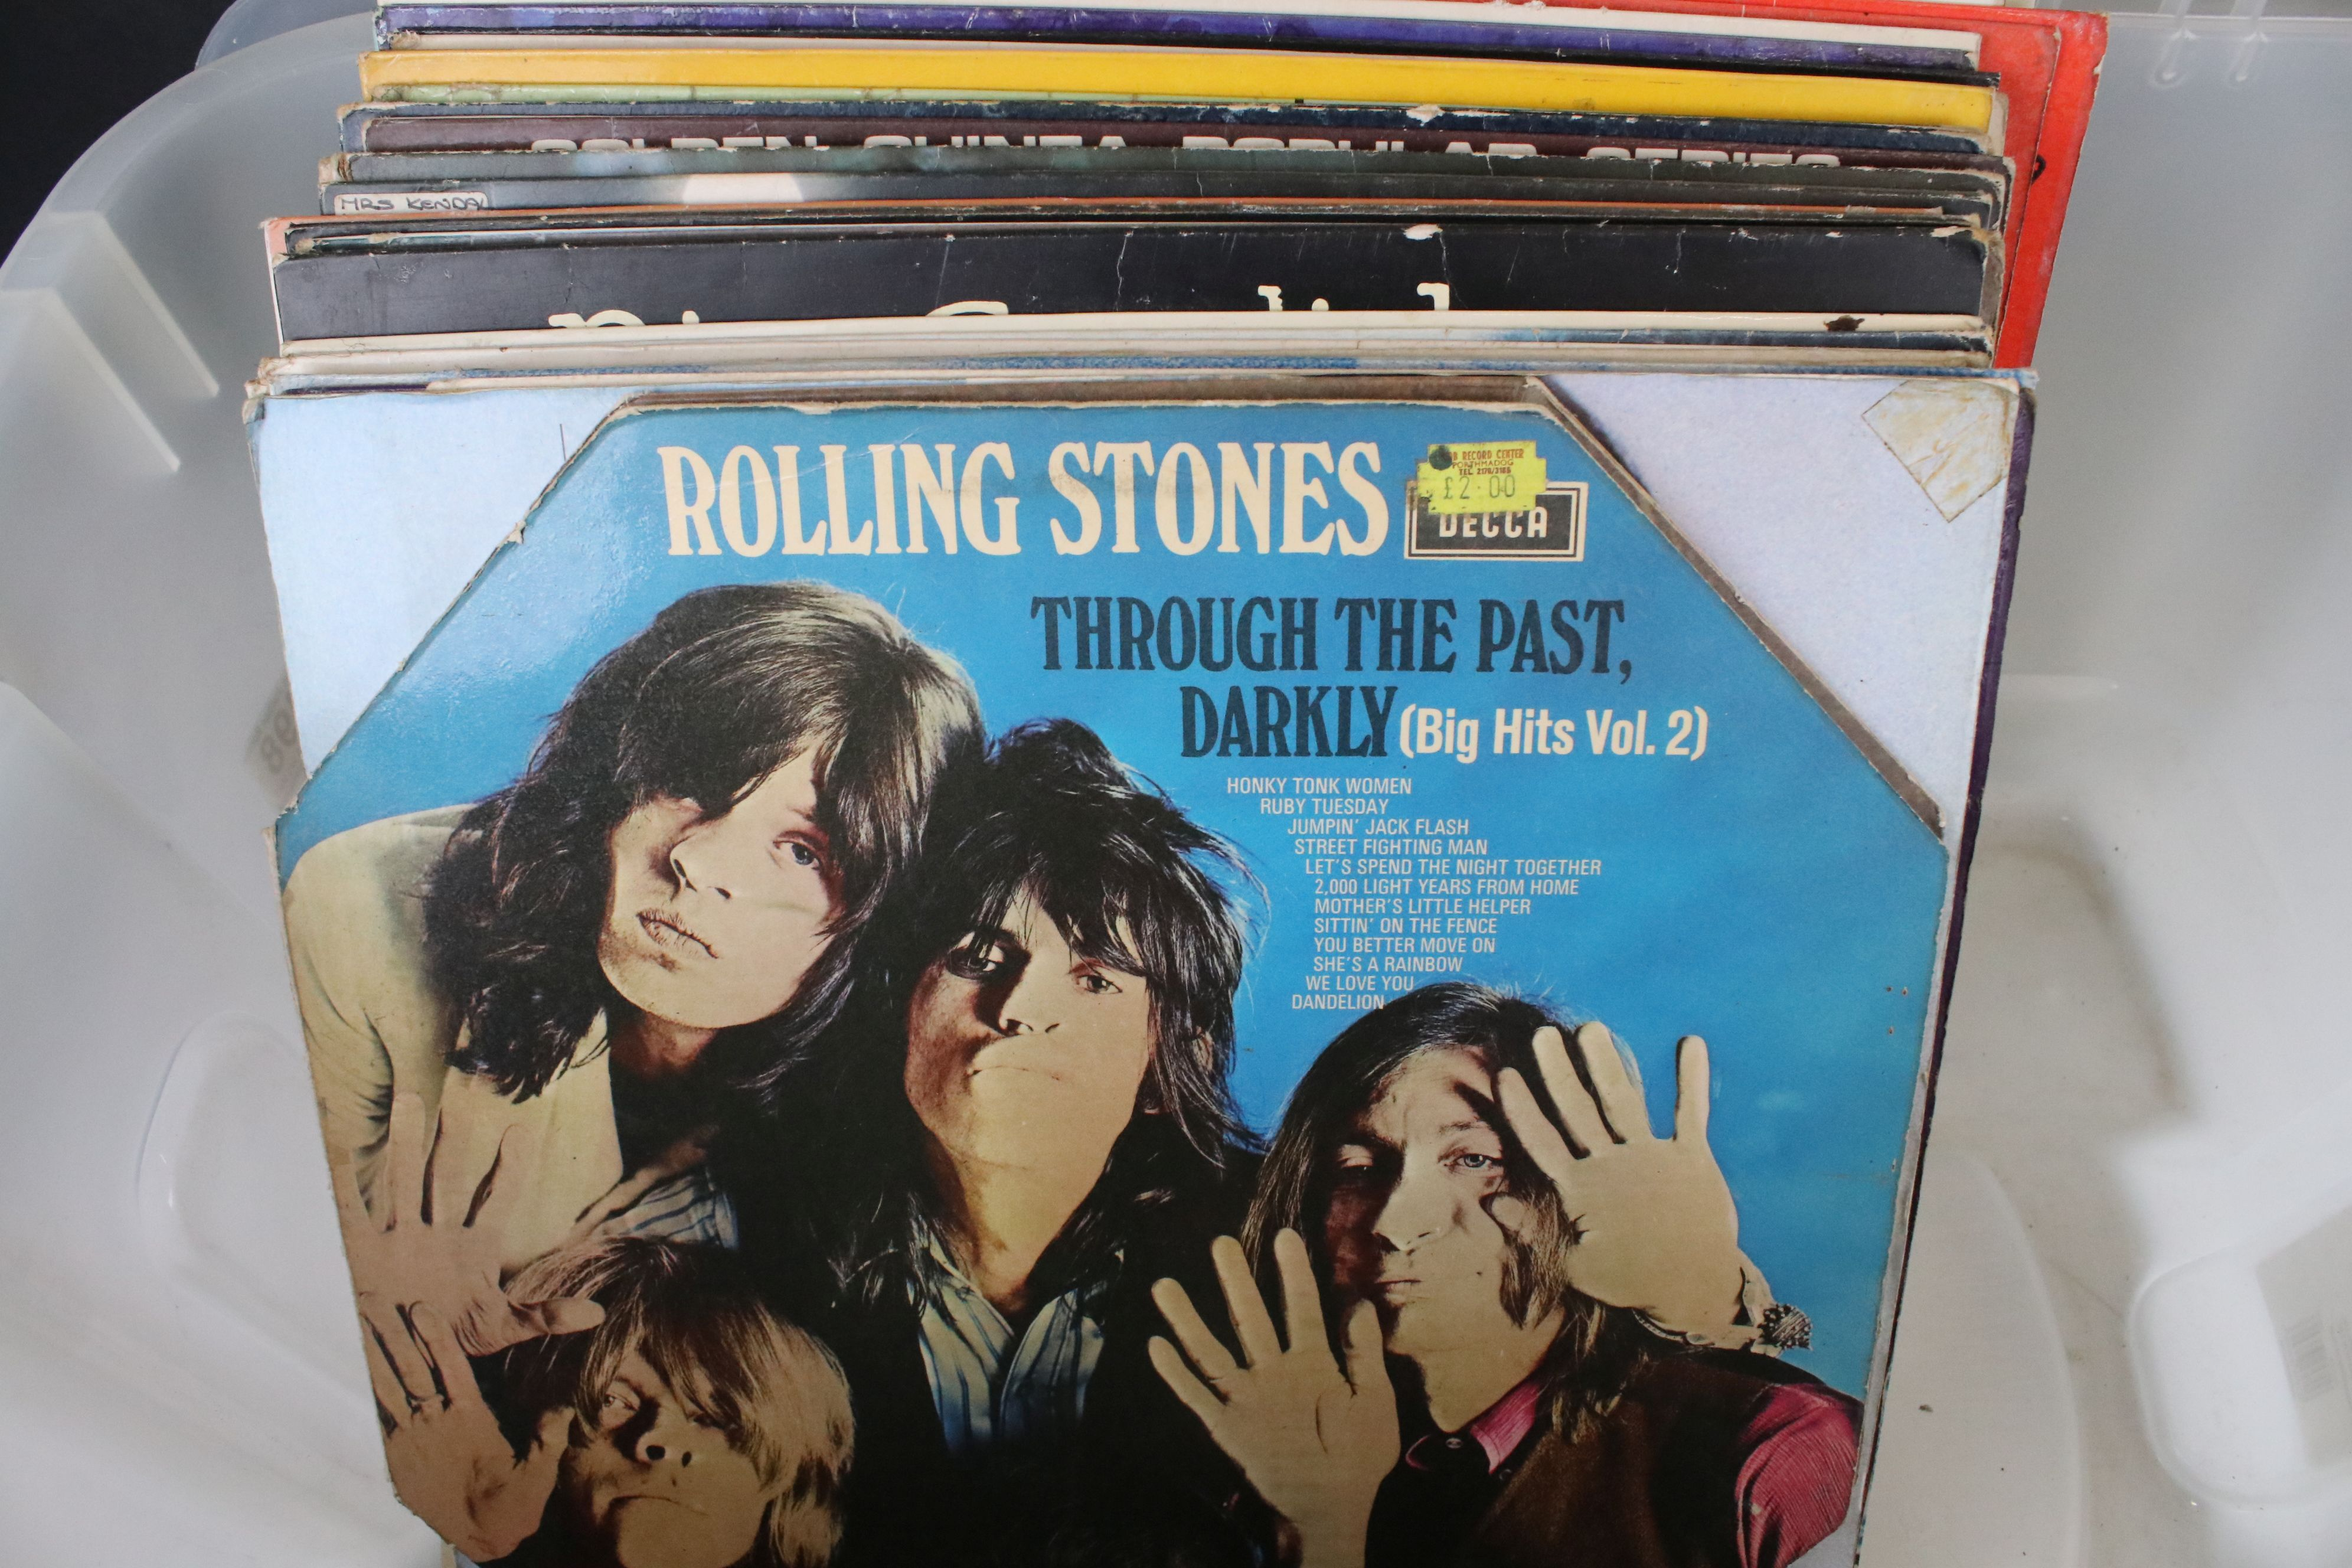 Vinyl - Rock / Pop / Classical - collection of approx 30 LP's to include The Rolling Stones (Spanish - Image 5 of 9